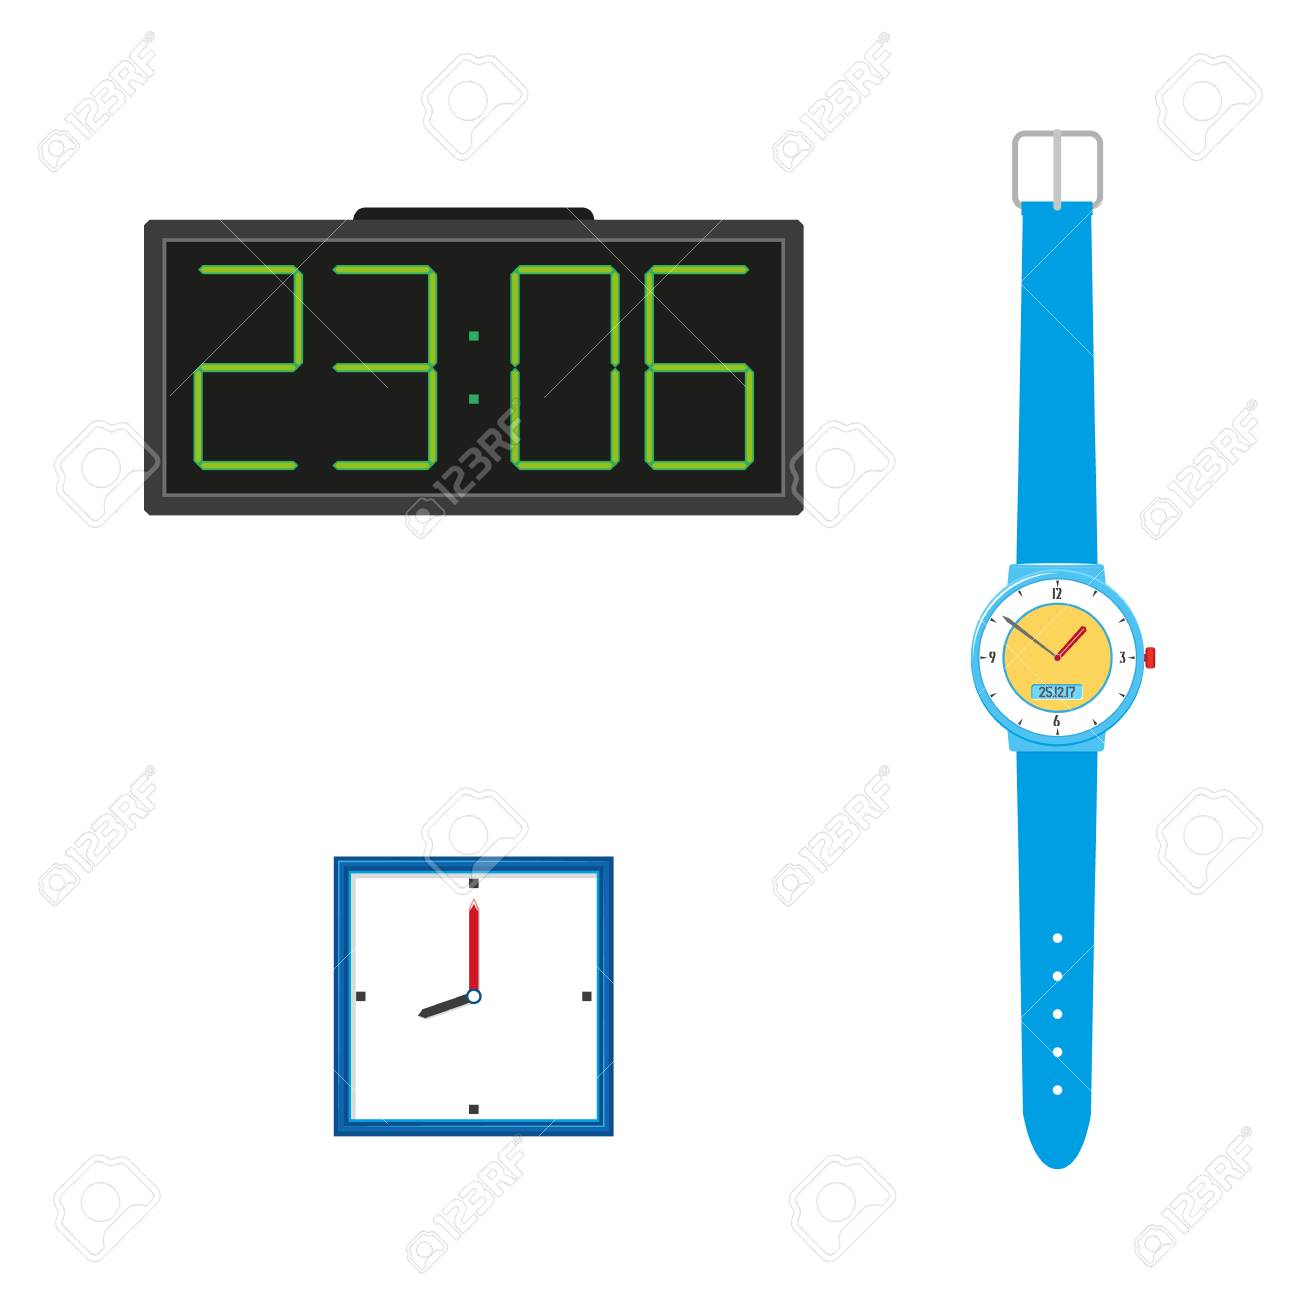 15d4253afa Vector - Vector flat analog wall mounted simple modern square white colored  clocks with blue frame, digital table clock, wrist watches icon for your  design.